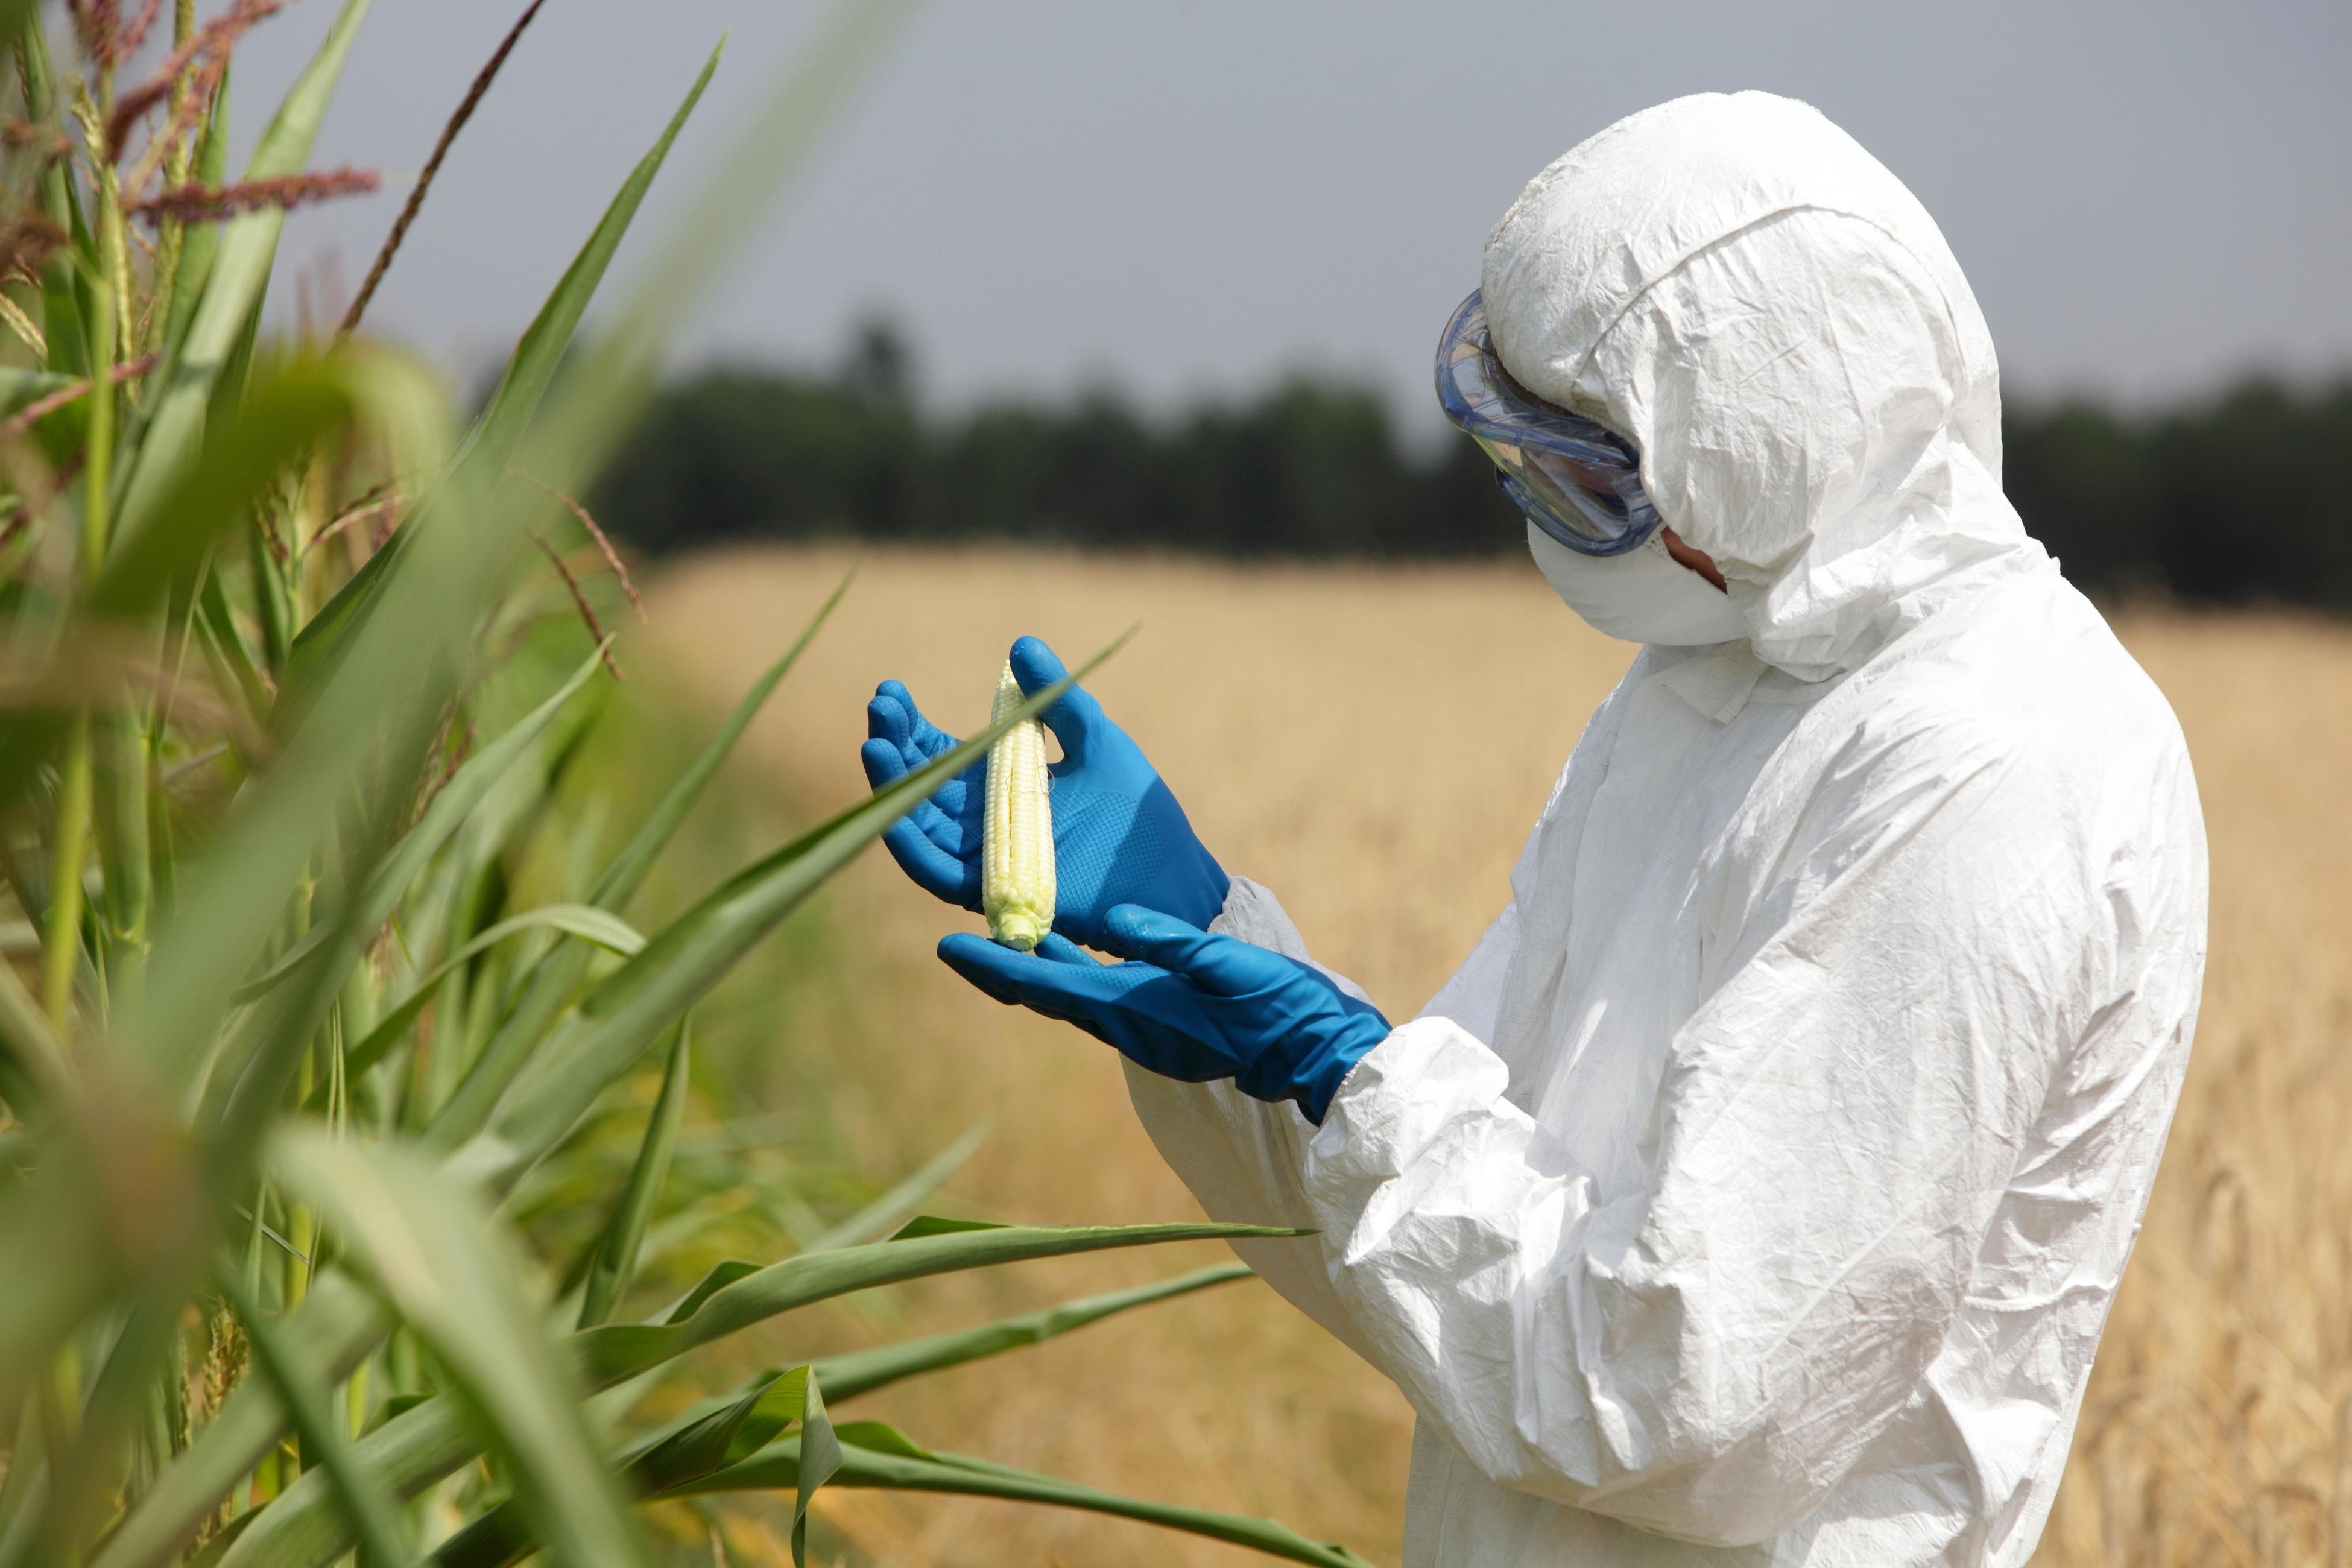 A person suited in bioharzard gear, examines a sample of corn in a field.